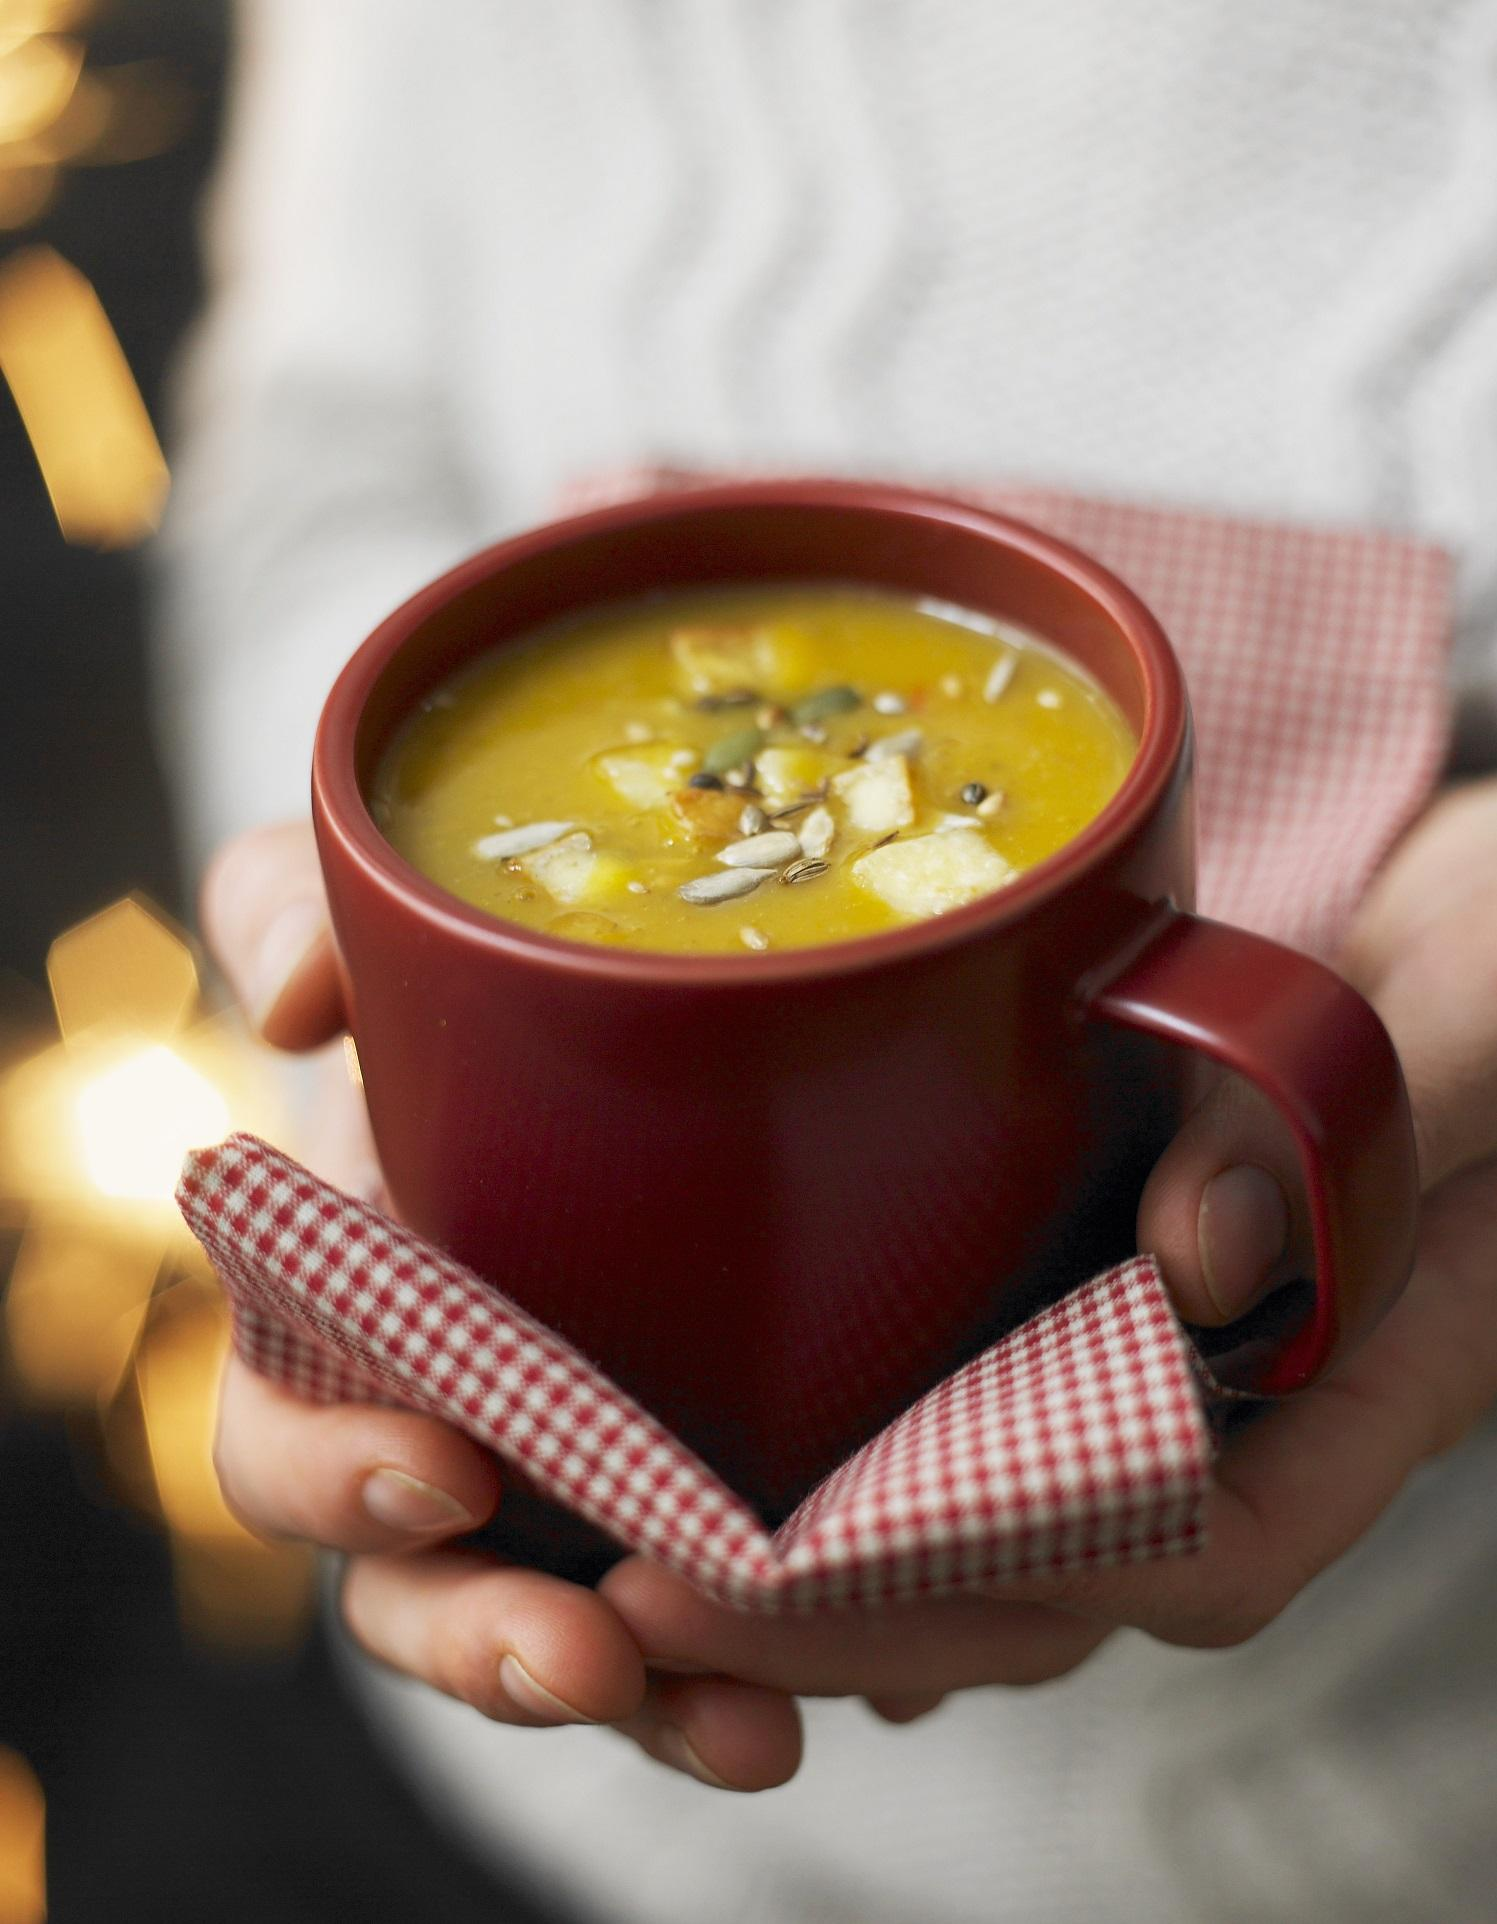 soupe butternut pic e au citron pour 2 personnes. Black Bedroom Furniture Sets. Home Design Ideas